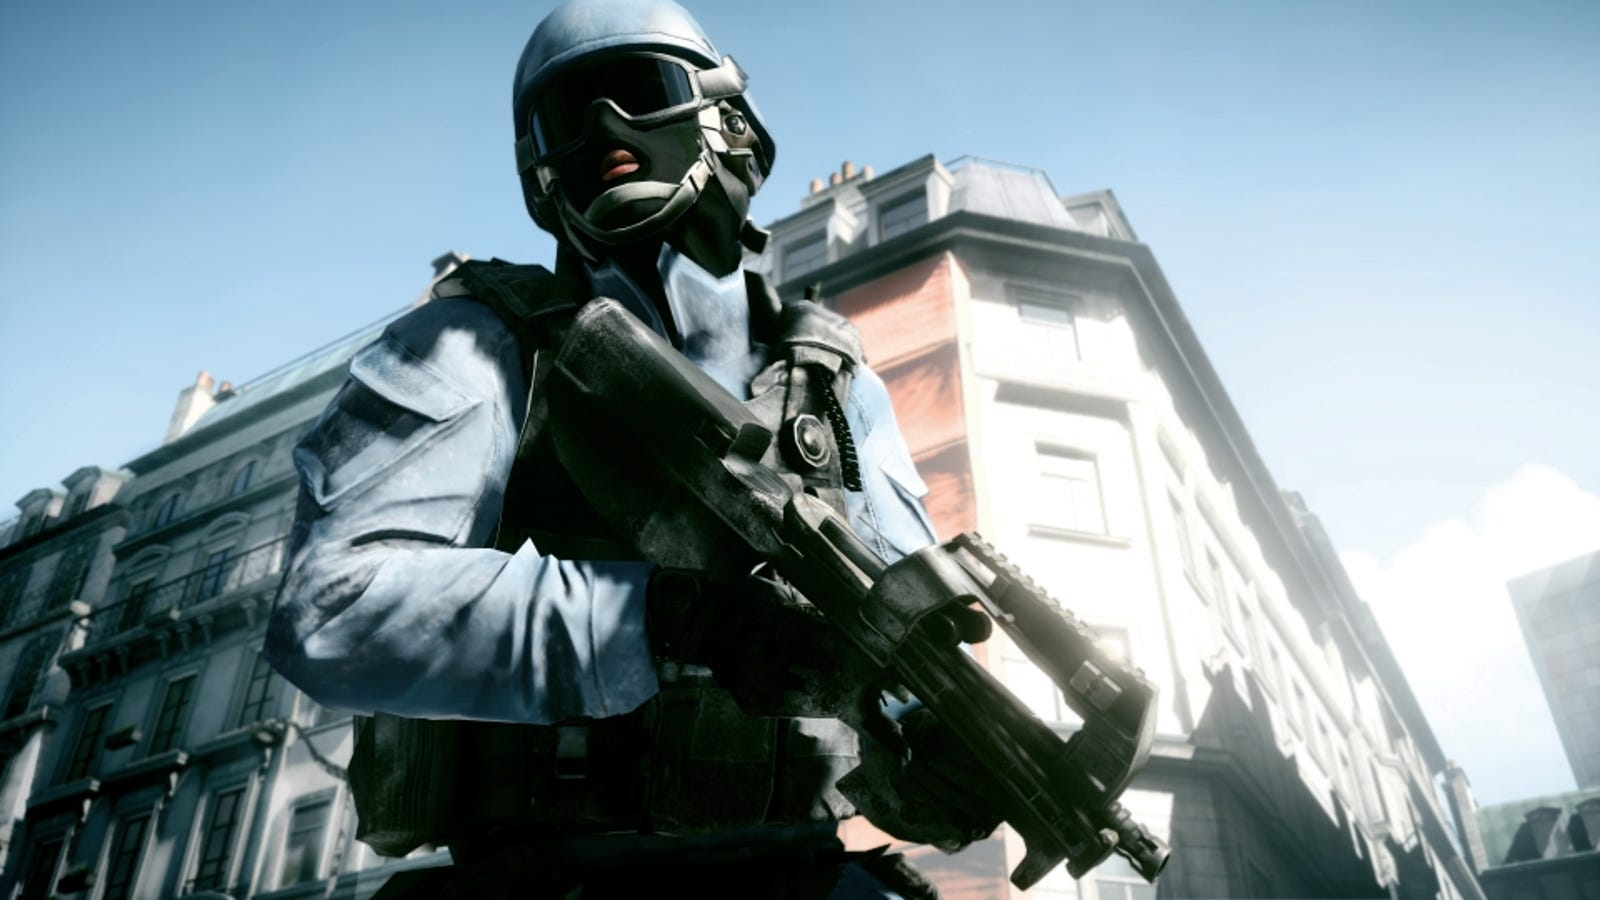 Console Battlefield 3 is Half the FPS of Modern Warfare 3